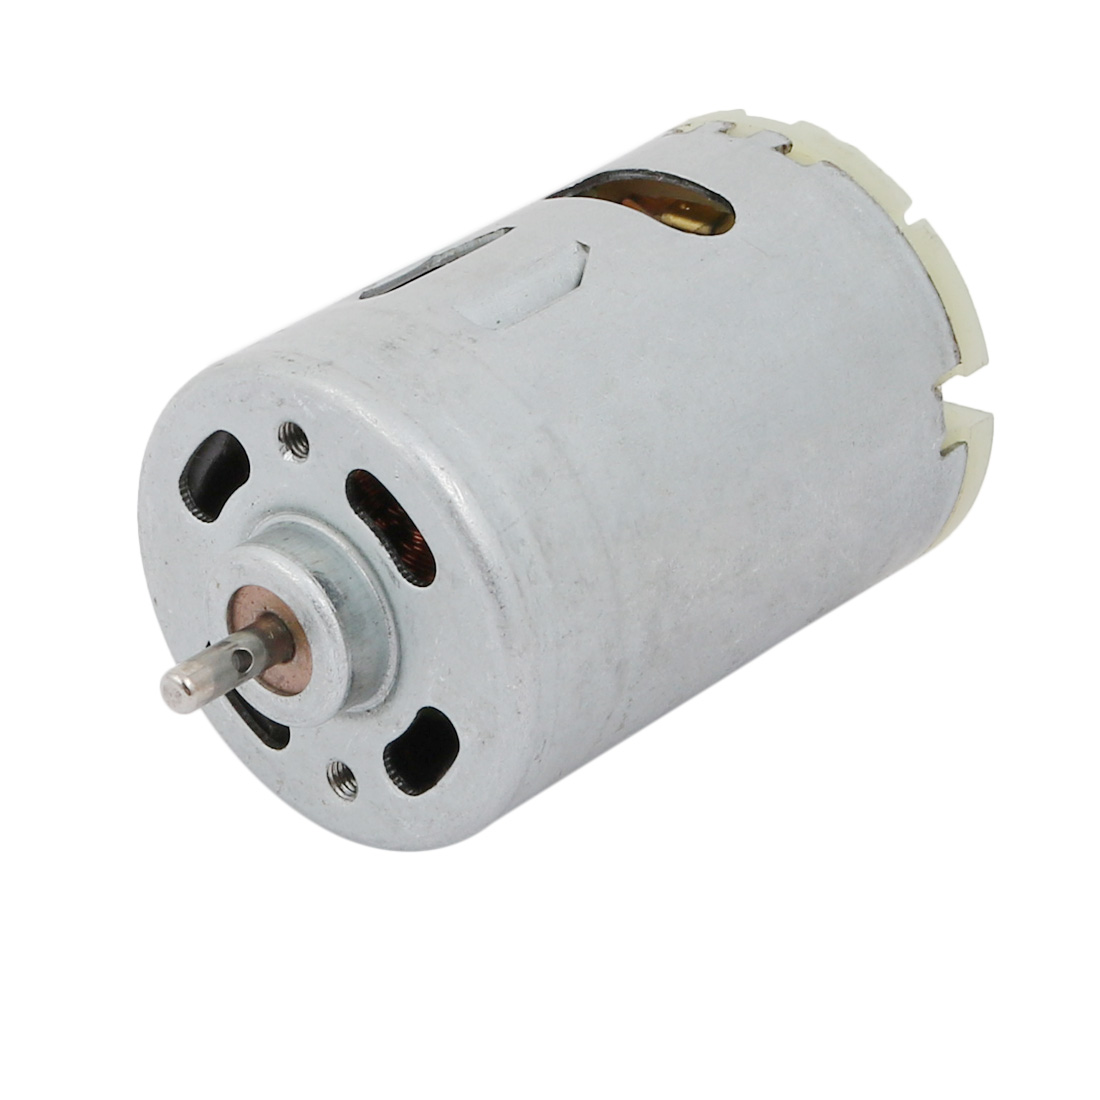 R545 DC12-24V 6000-13600RPM 3.2mm Dia Shaft DC Motor for DIY Electric Projects